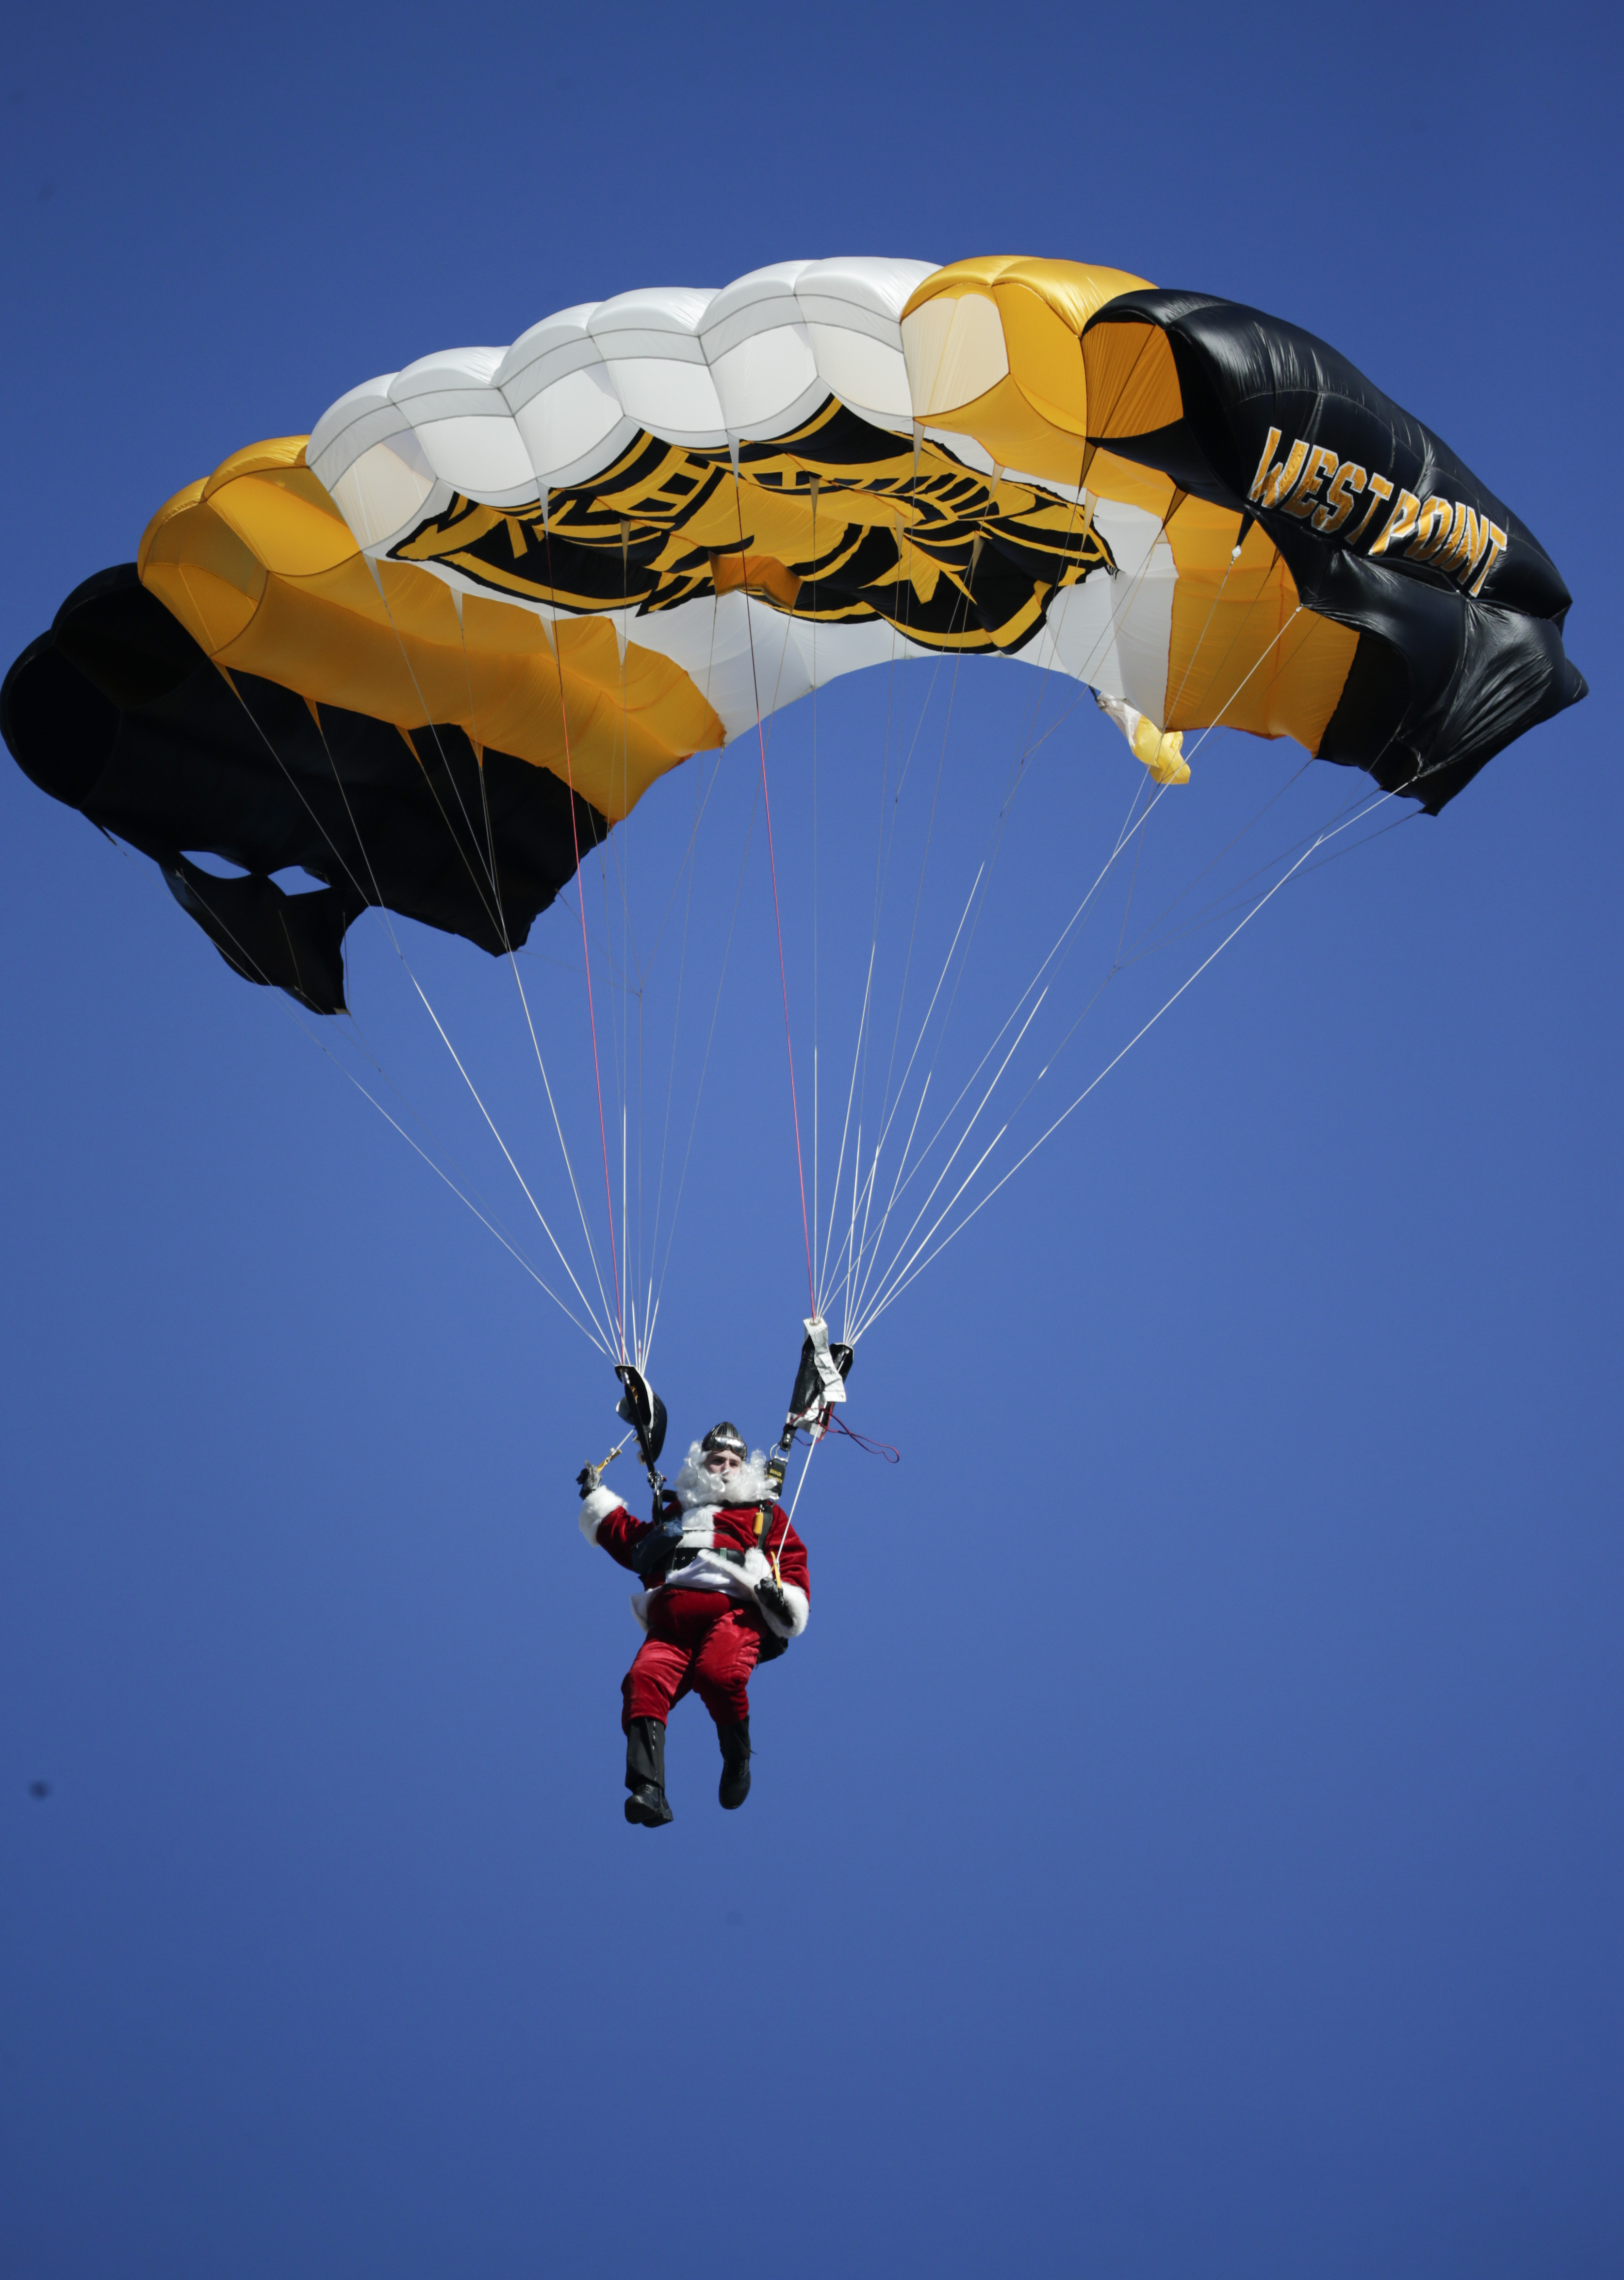 Cadet Jordan Komm, of Houston, dressed as Santa Claus, parachutes into Michie Stadium before an NCAA college football game between Army and Rutgers on Saturday, Nov. 21, 2015, in West Point, N.Y. (AP Photo/Mike Groll)